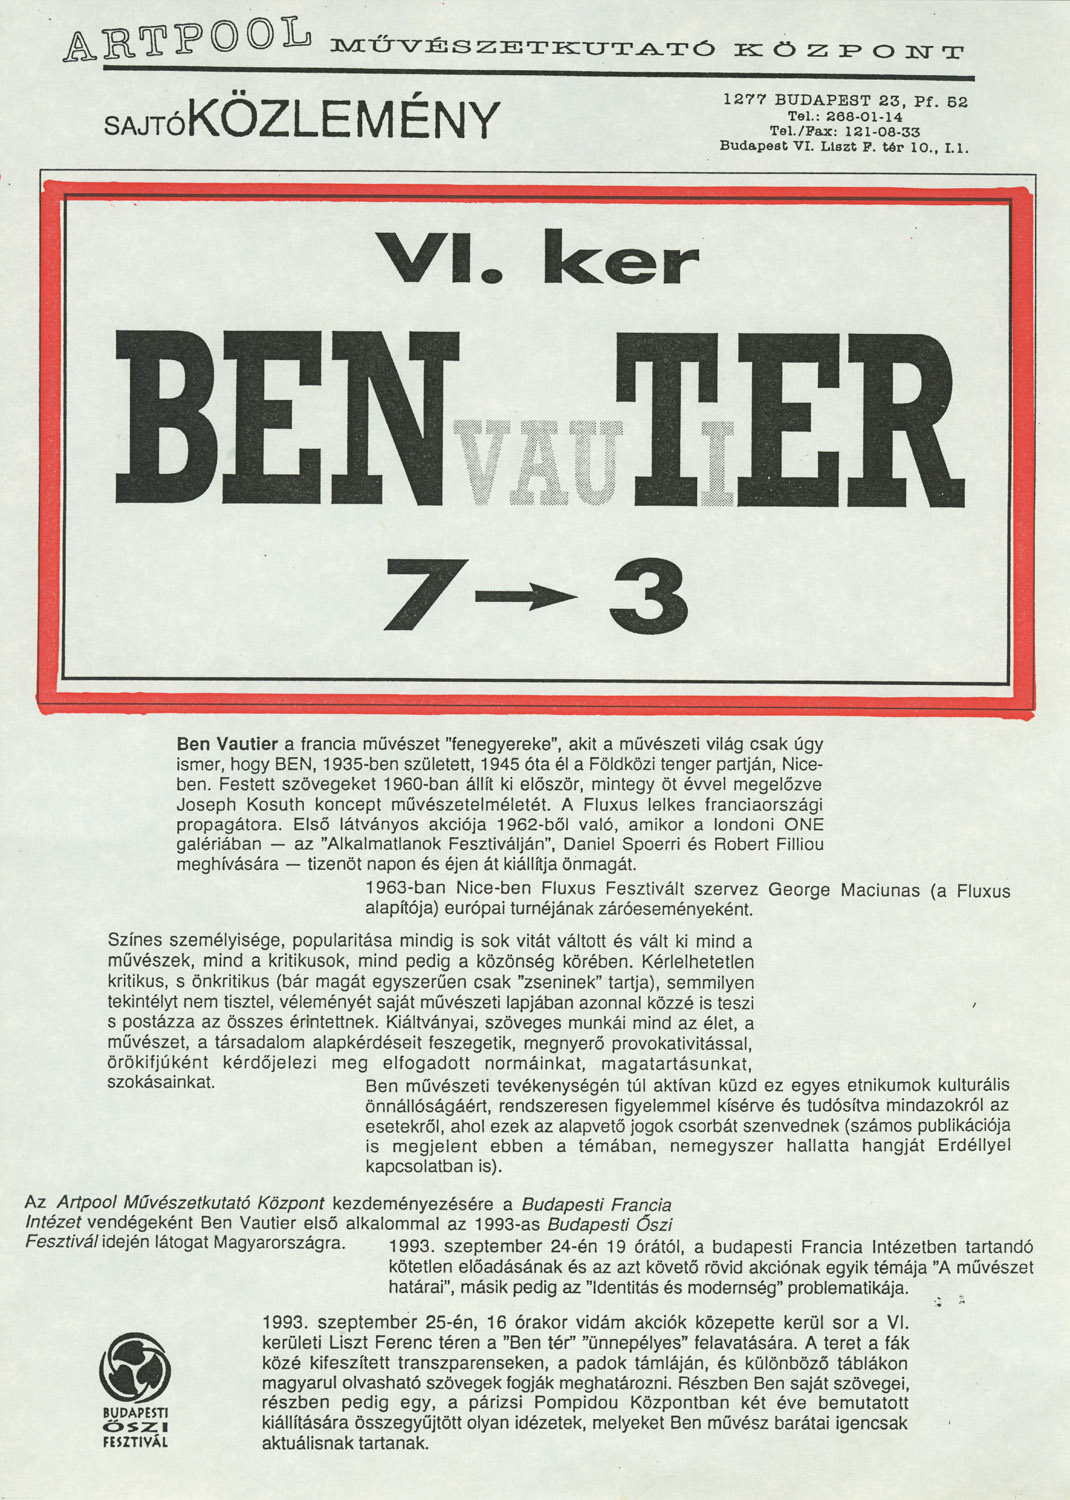 Press release for the inauguration of the Ben Tér and presentation of fluxus artist Ben Vautier visiting Budapest on the invitation of Artpool. On the back: Artpool's program for the Budapest Autumn Festival, 1993 (1st and 2nd page)